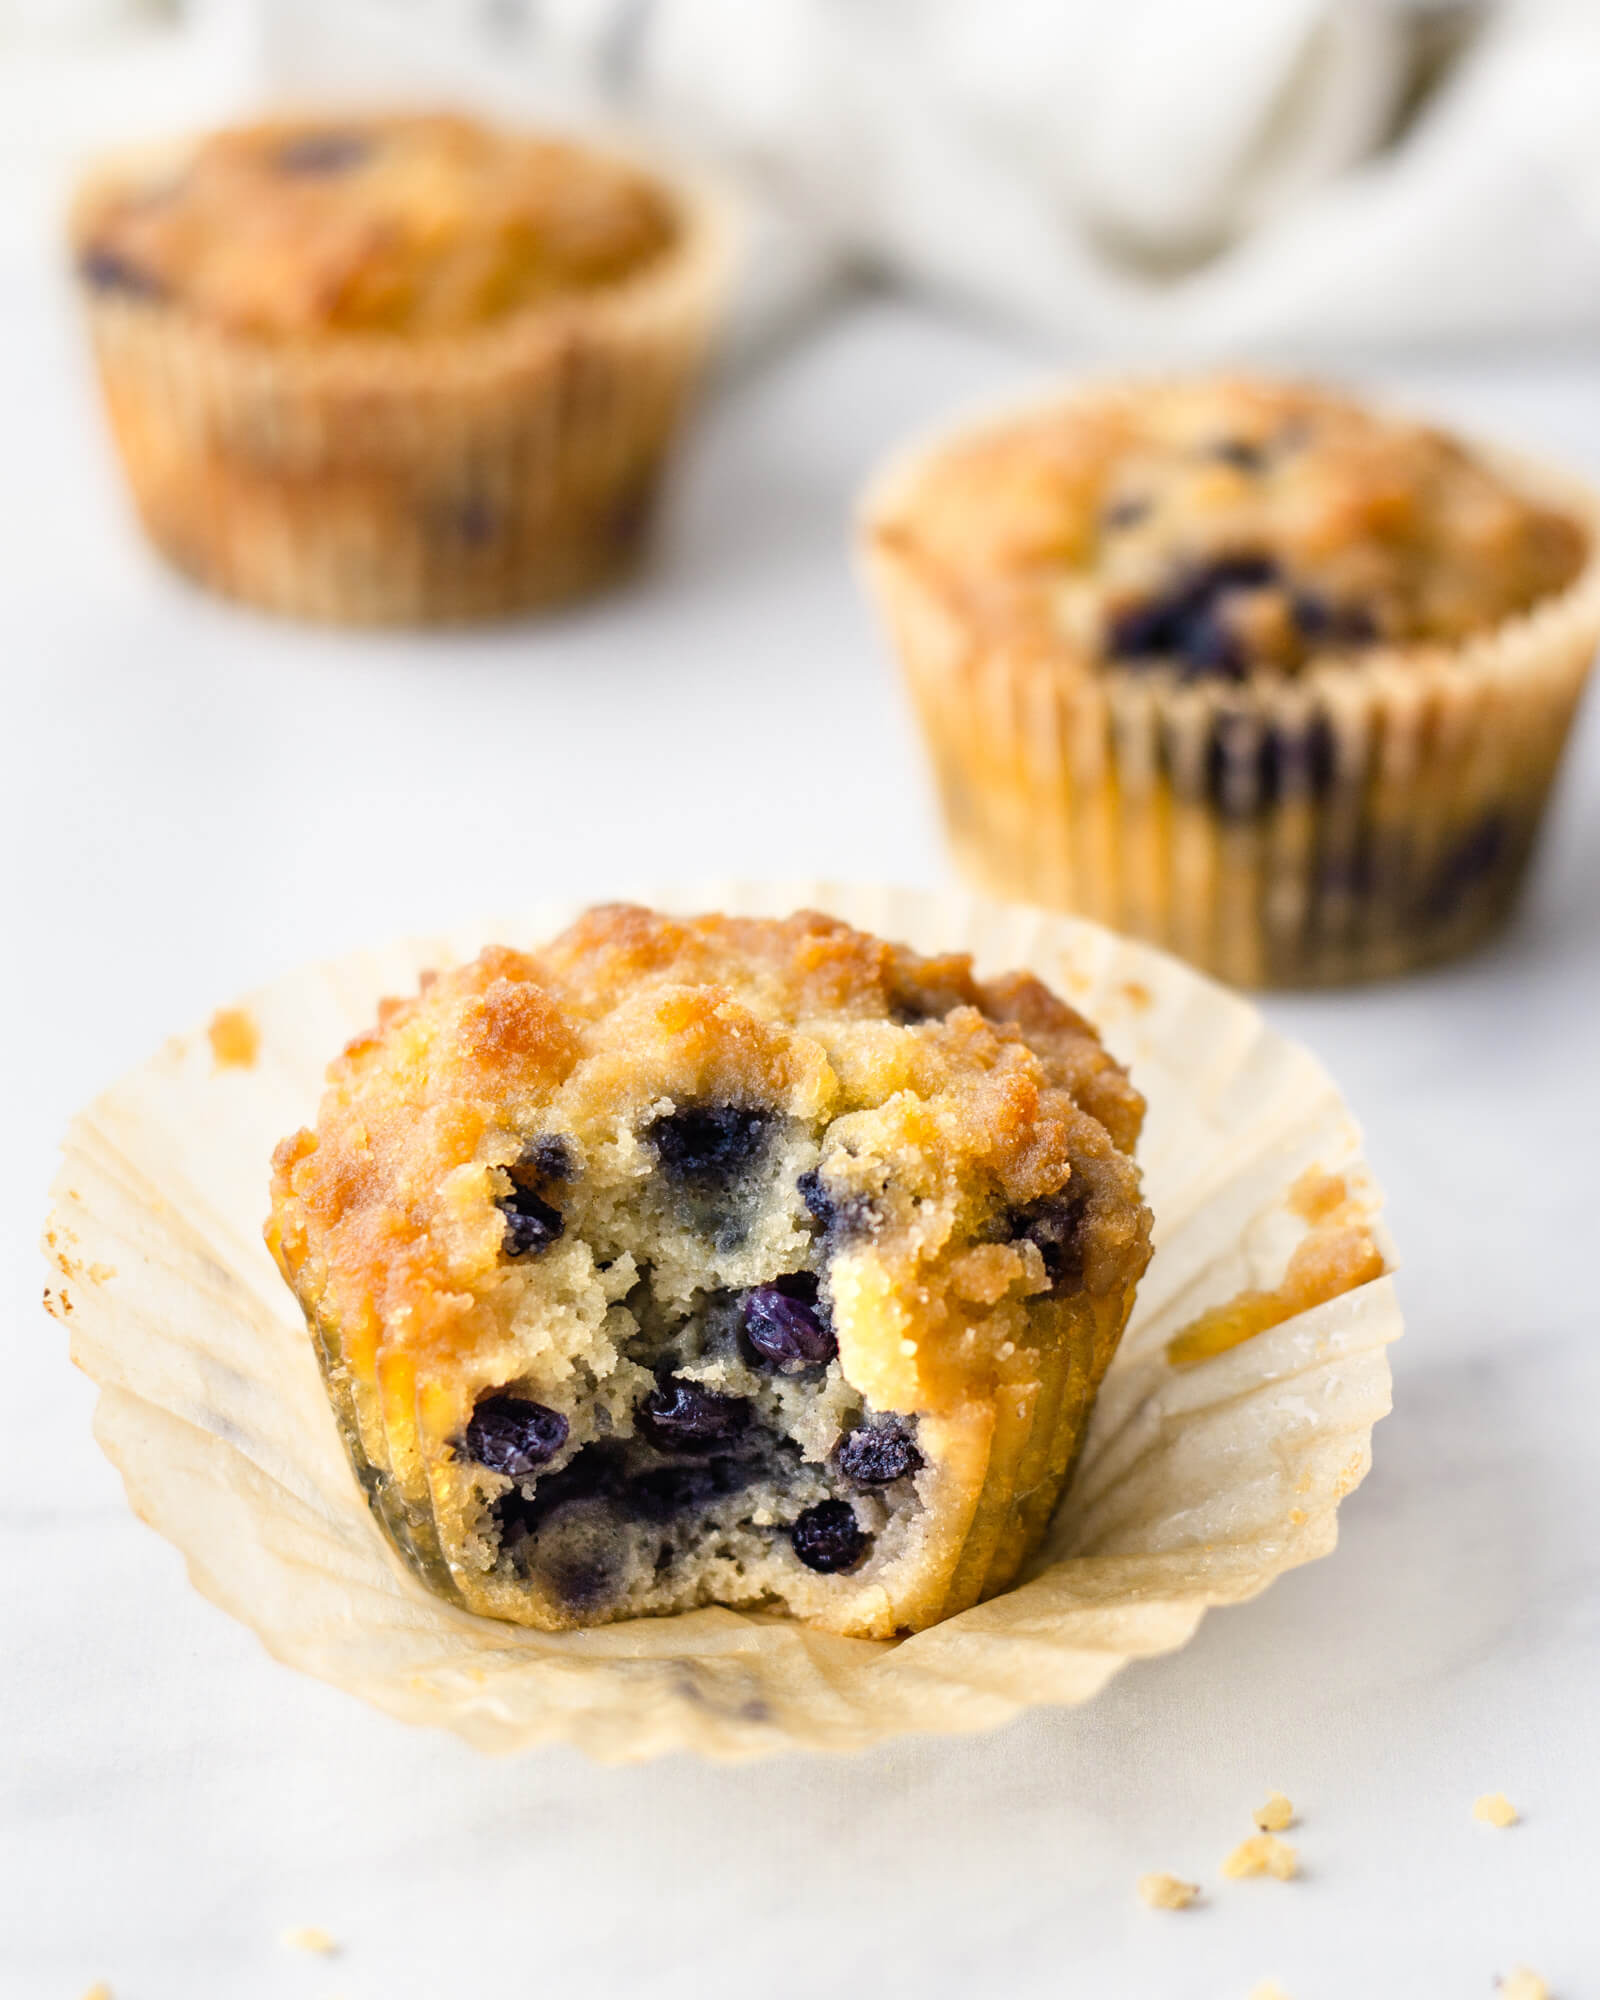 Keto blueberry muffin made with coconut flour and crumb topping with bite taken on nonstick cupcake liner